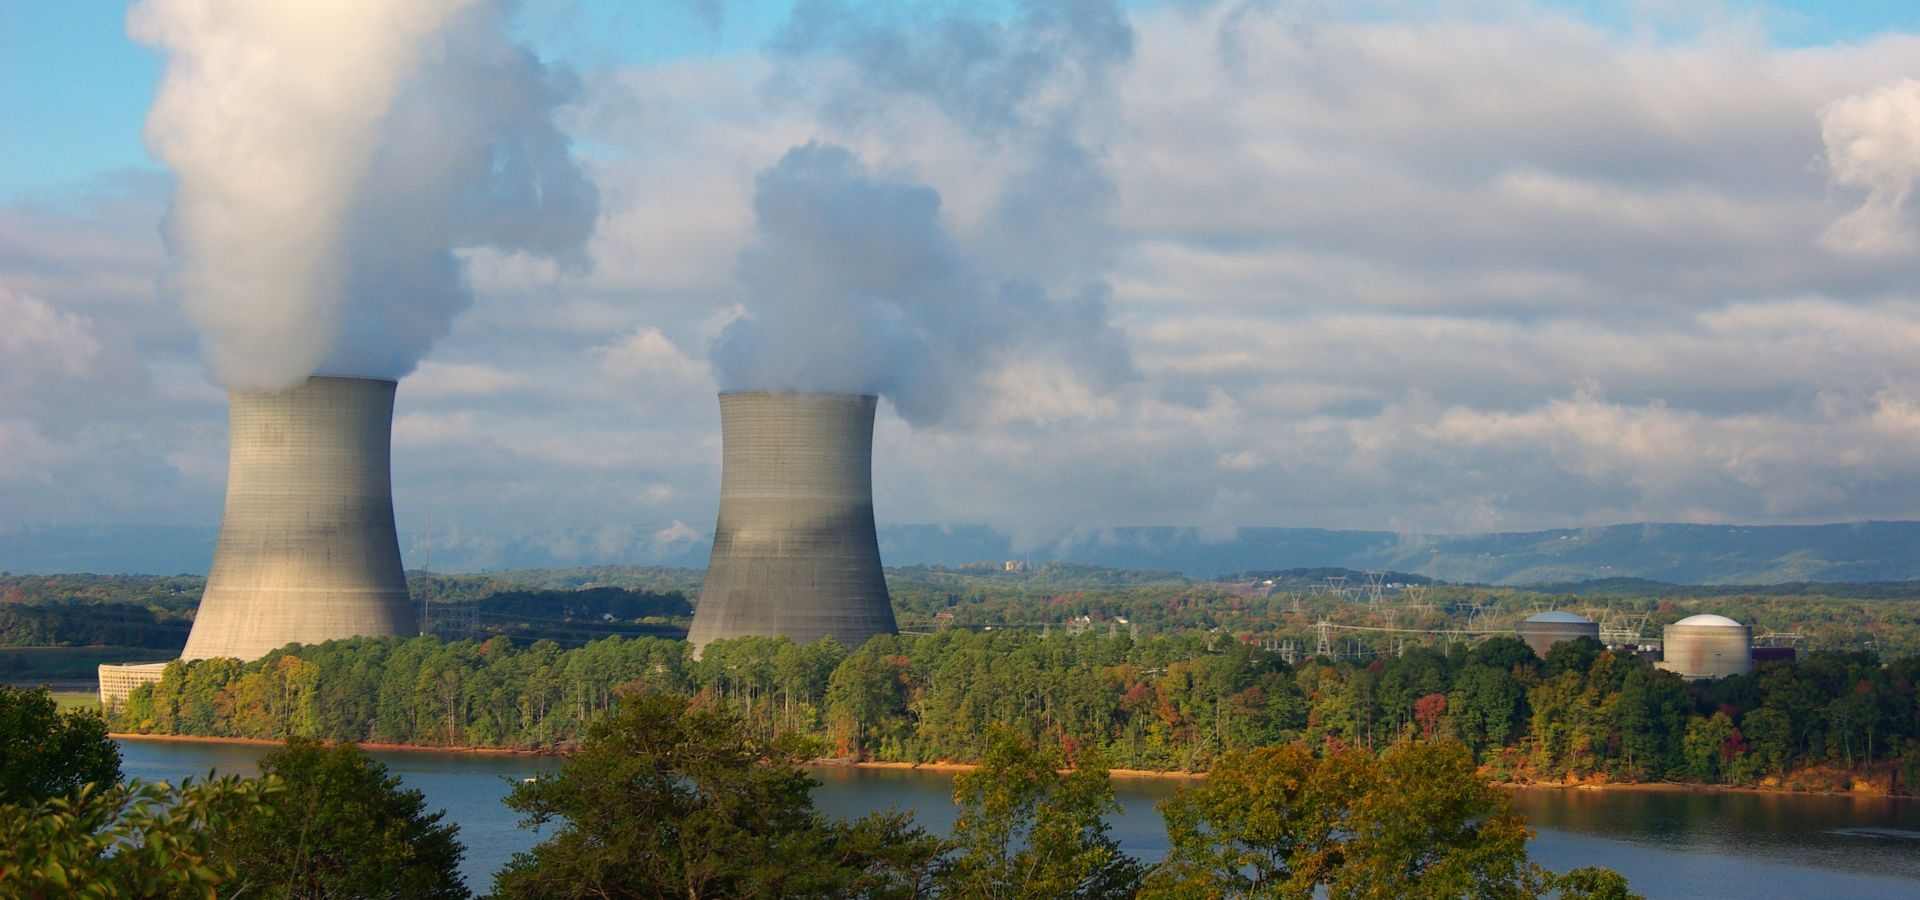 A nuclear power plant on a river